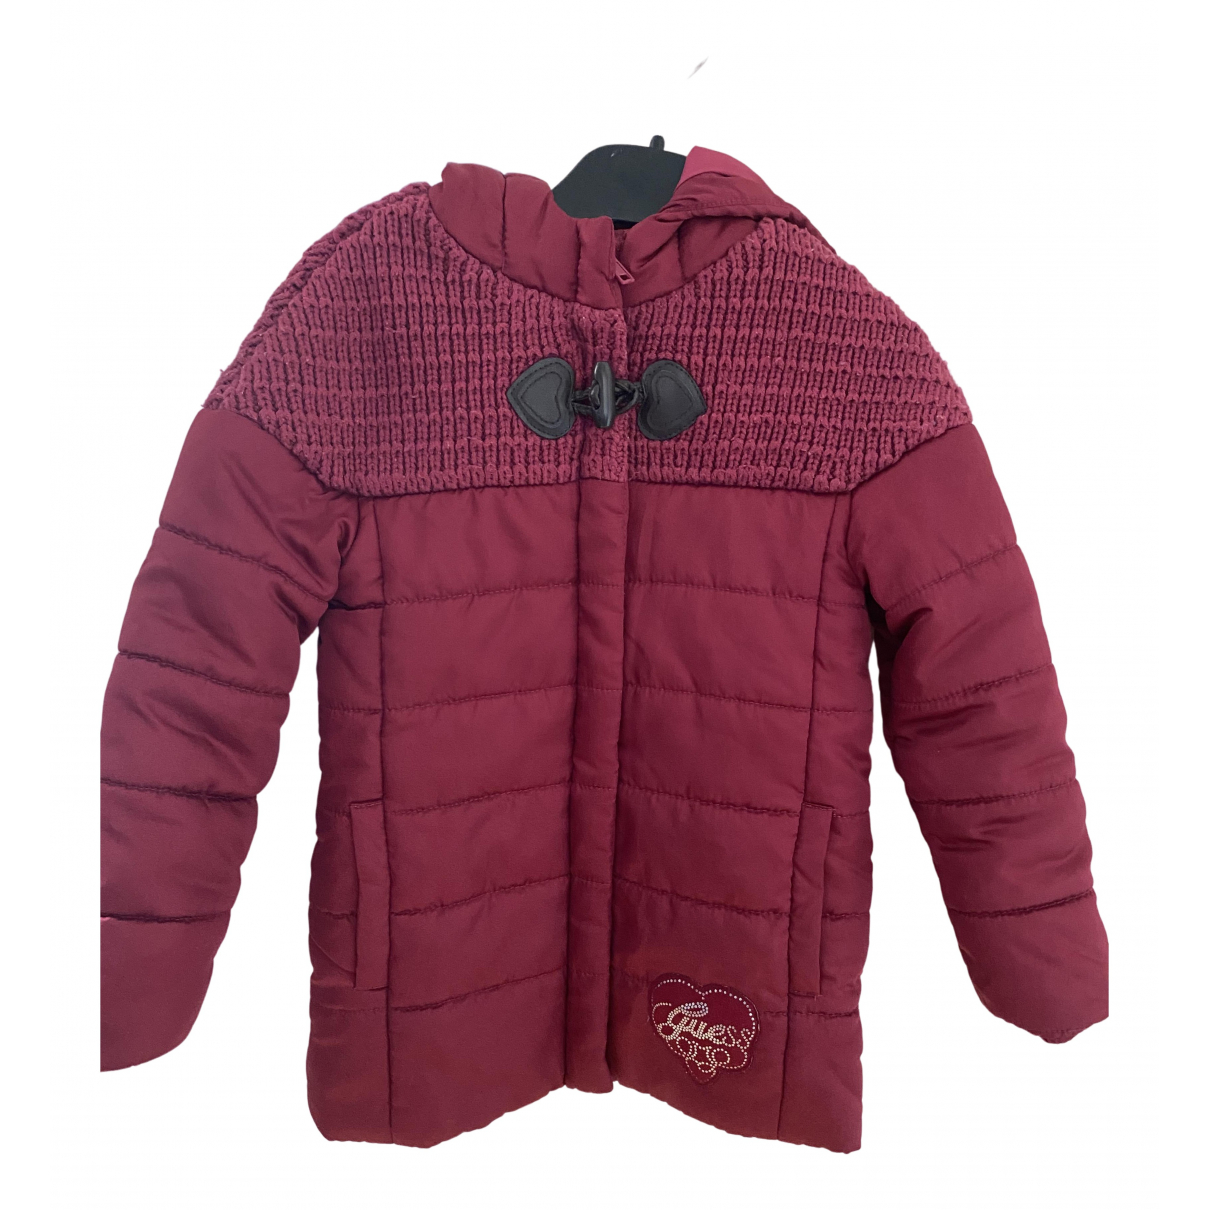 Guess \N Jacke, Maentel in  Rot Polyester